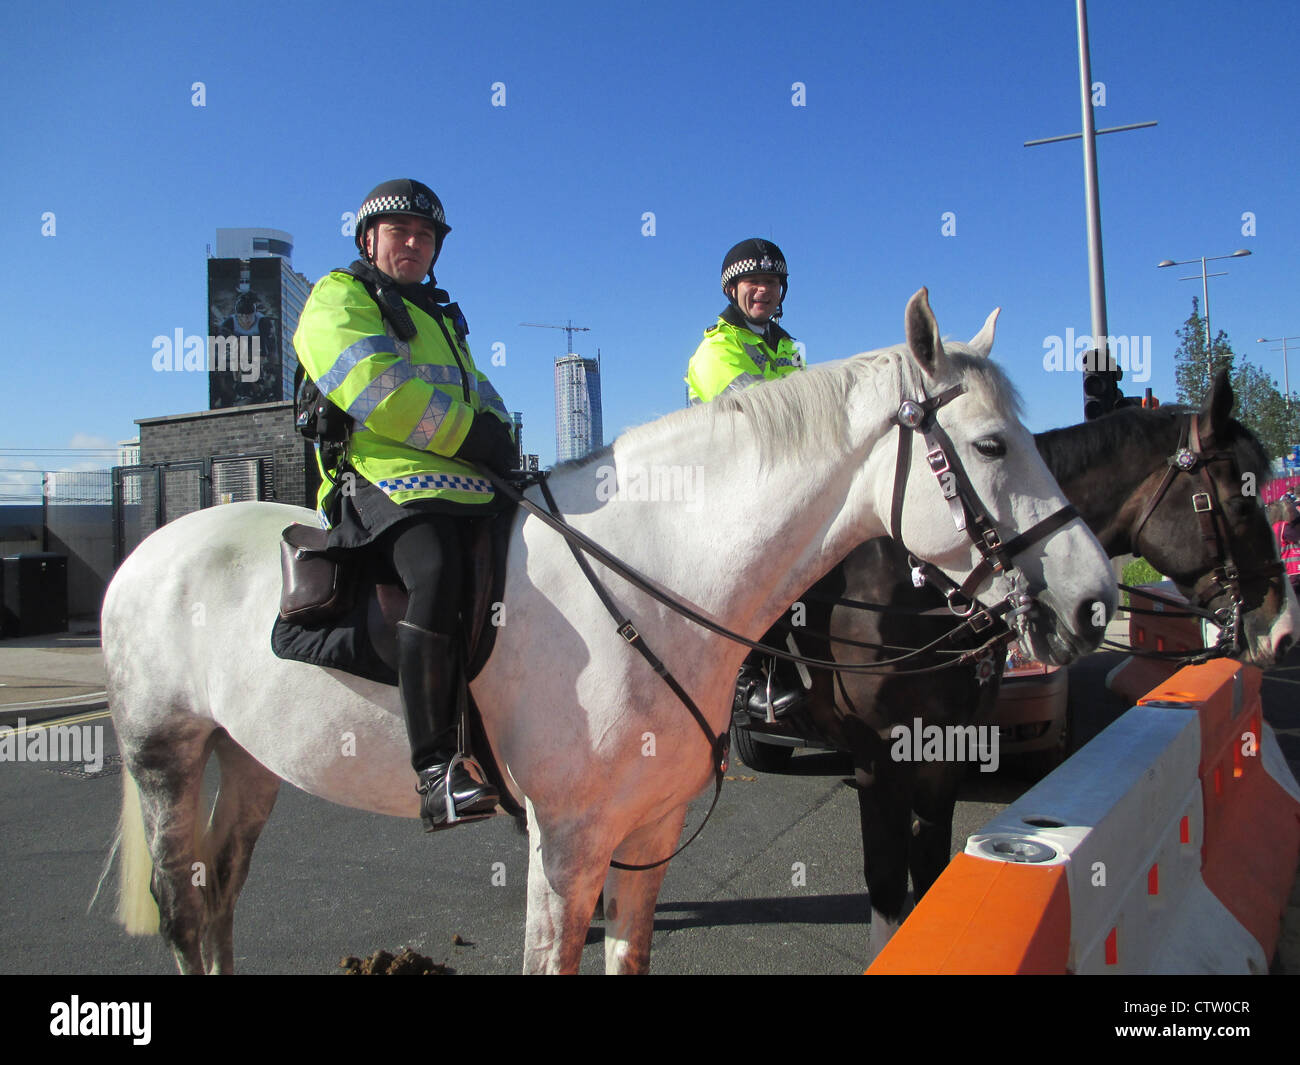 MOUNTED POLICE at the Olympic Park, Stratford, London, in July 2012. Photo Tony Gale - Stock Image